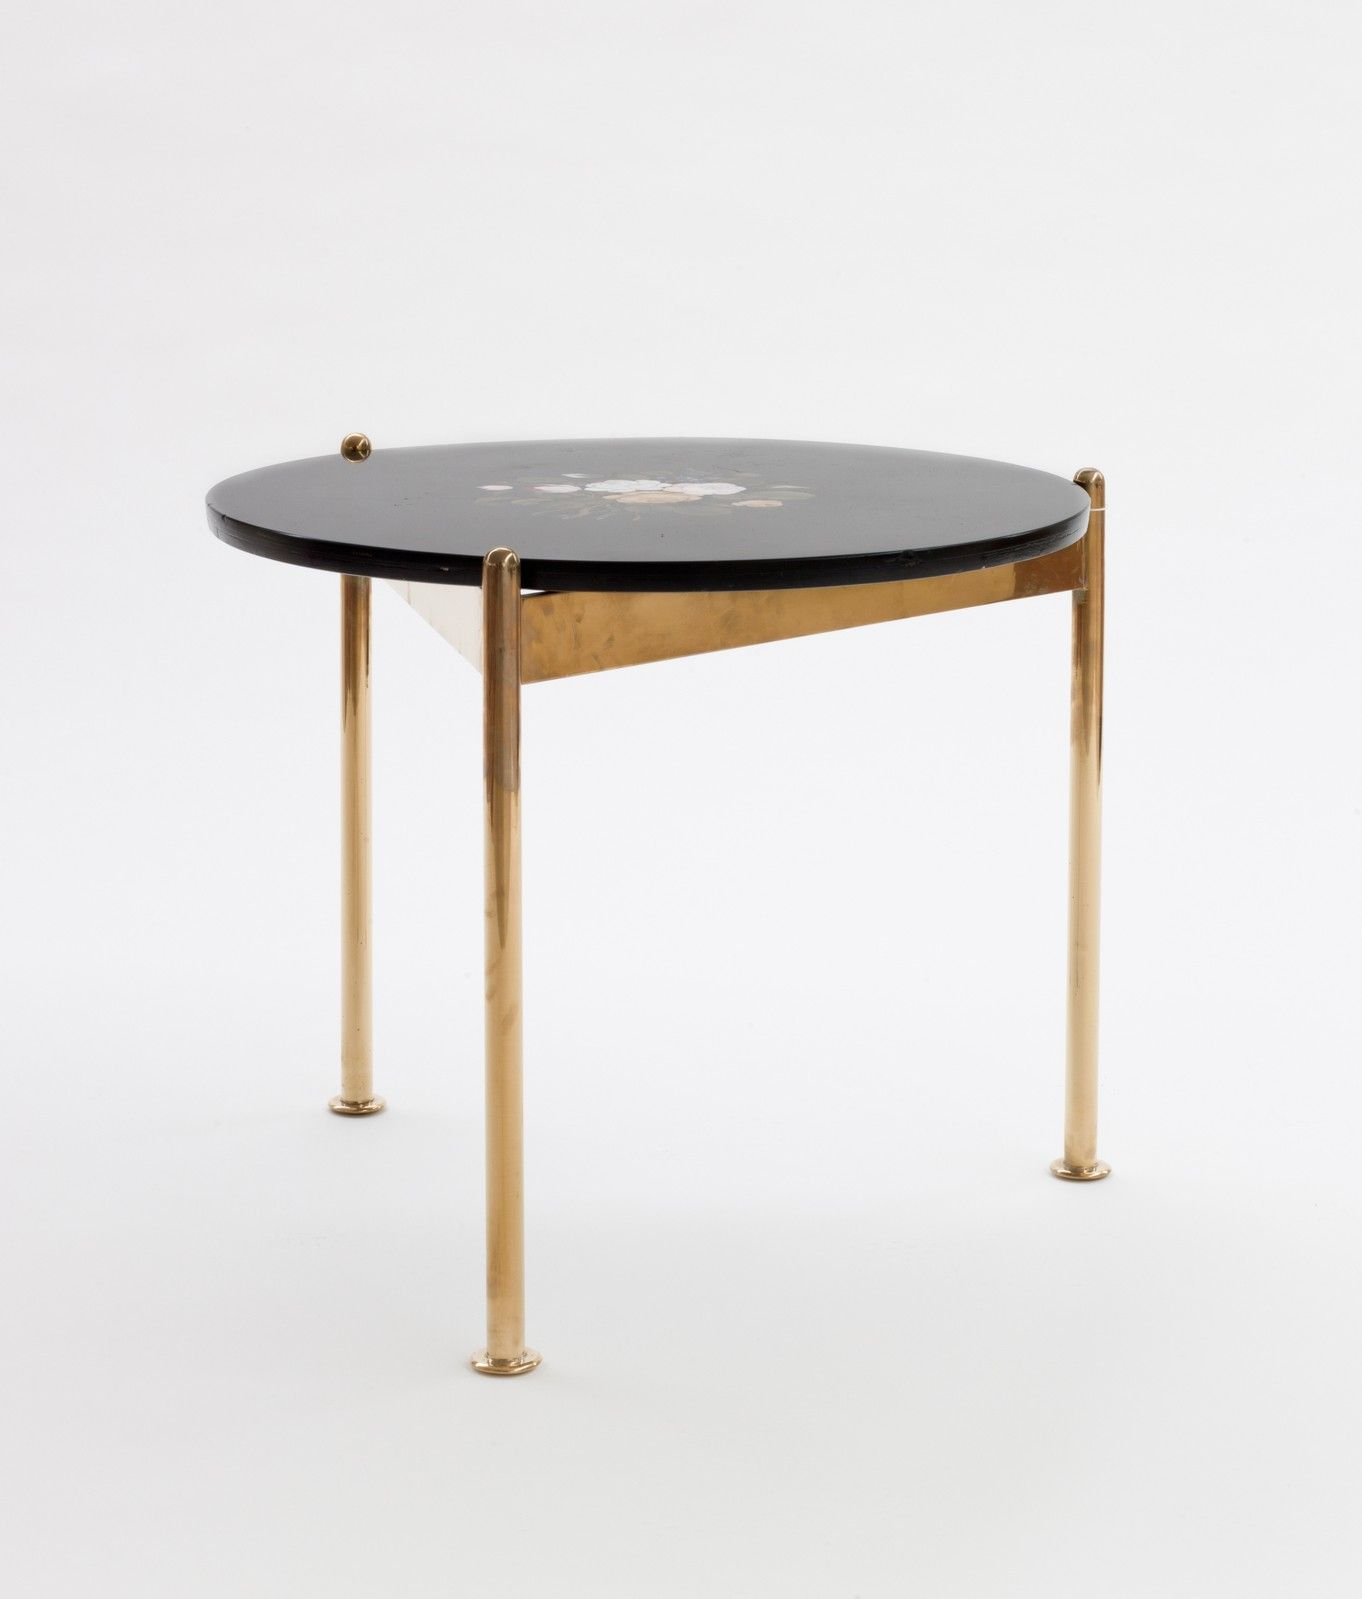 Alexander Girard Brass Marble and Hardstone Inlay Low Table for